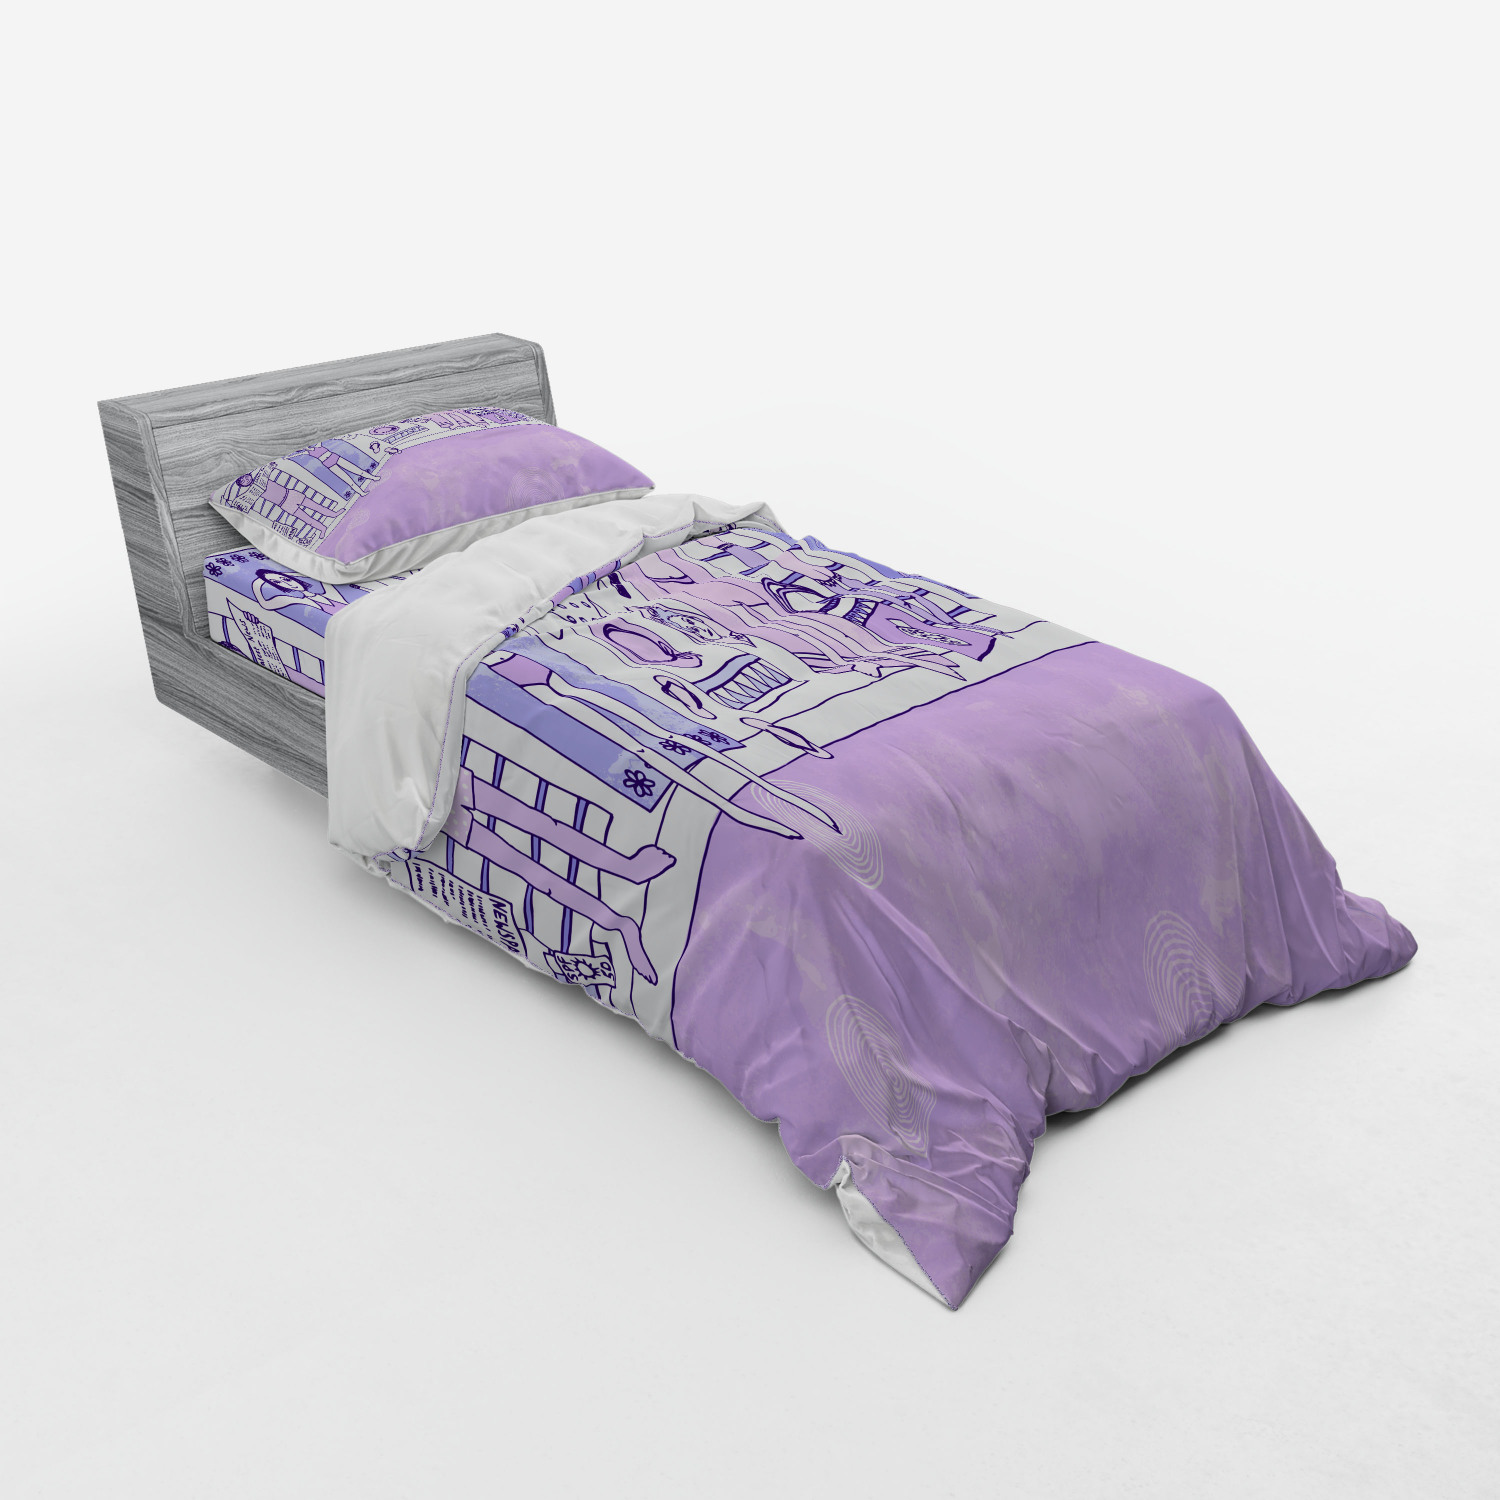 thumbnail 141 - Ambesonne Summer Bedding Set Duvet Cover Sham Fitted Sheet in 3 Sizes